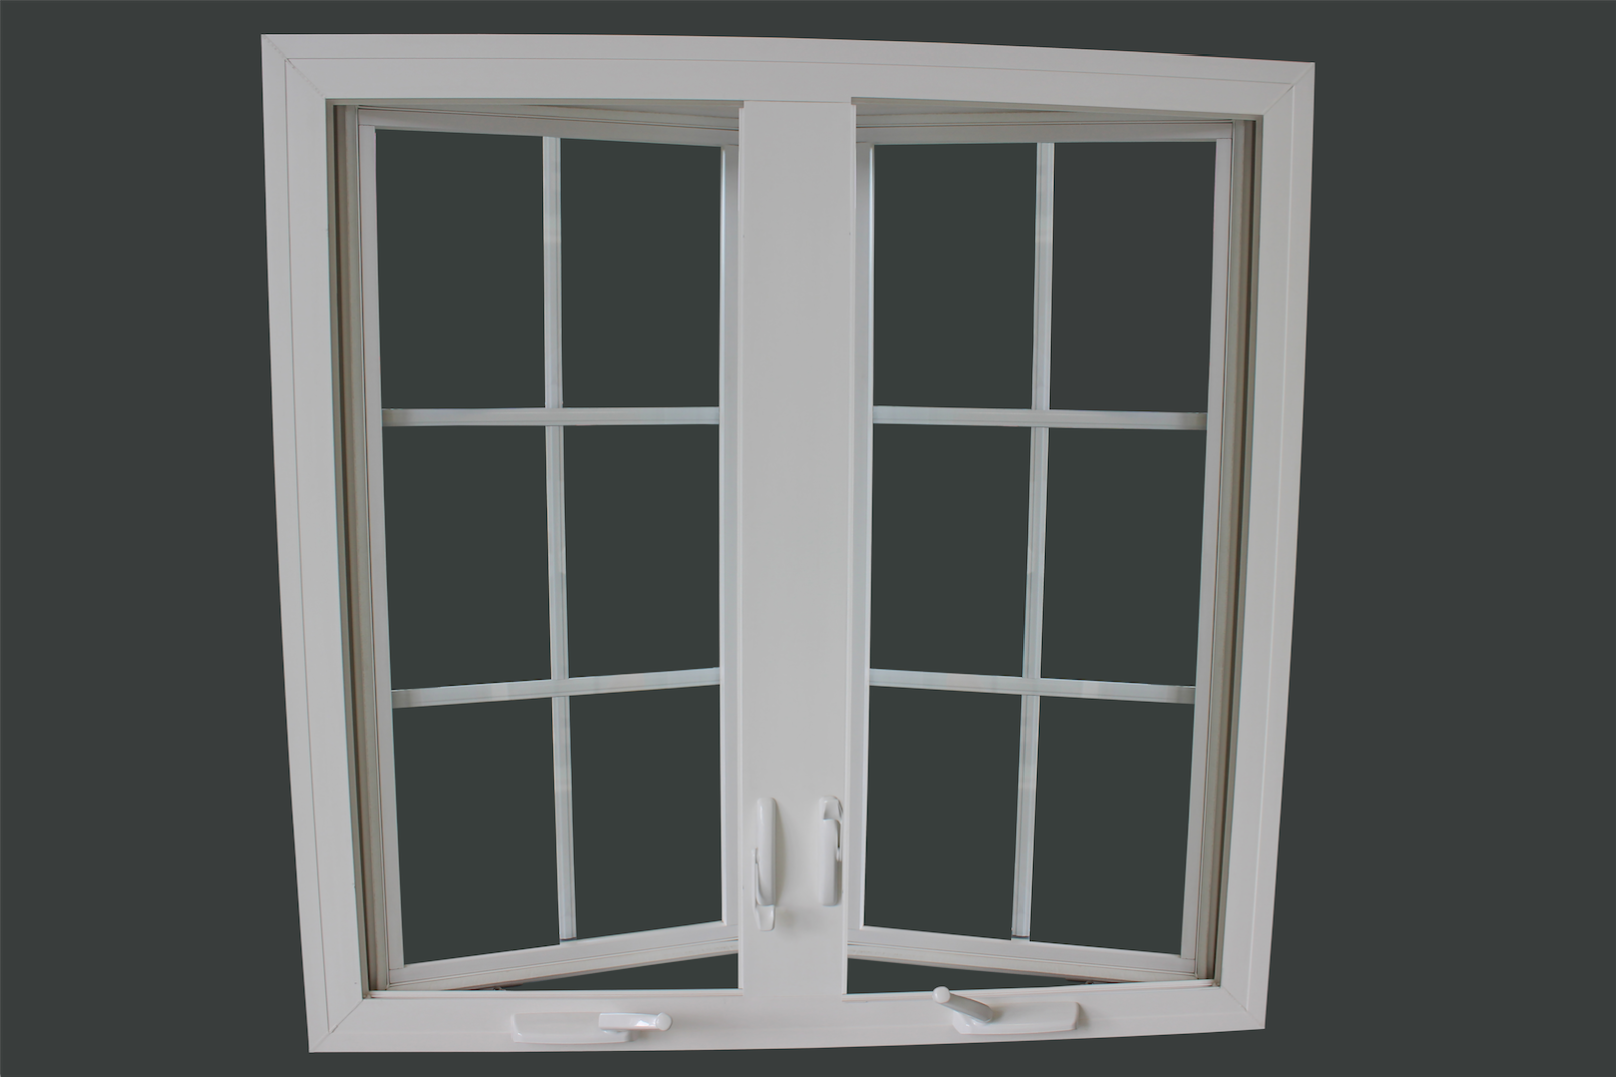 New Construction Casement Windows Specialty Wholesale Supply